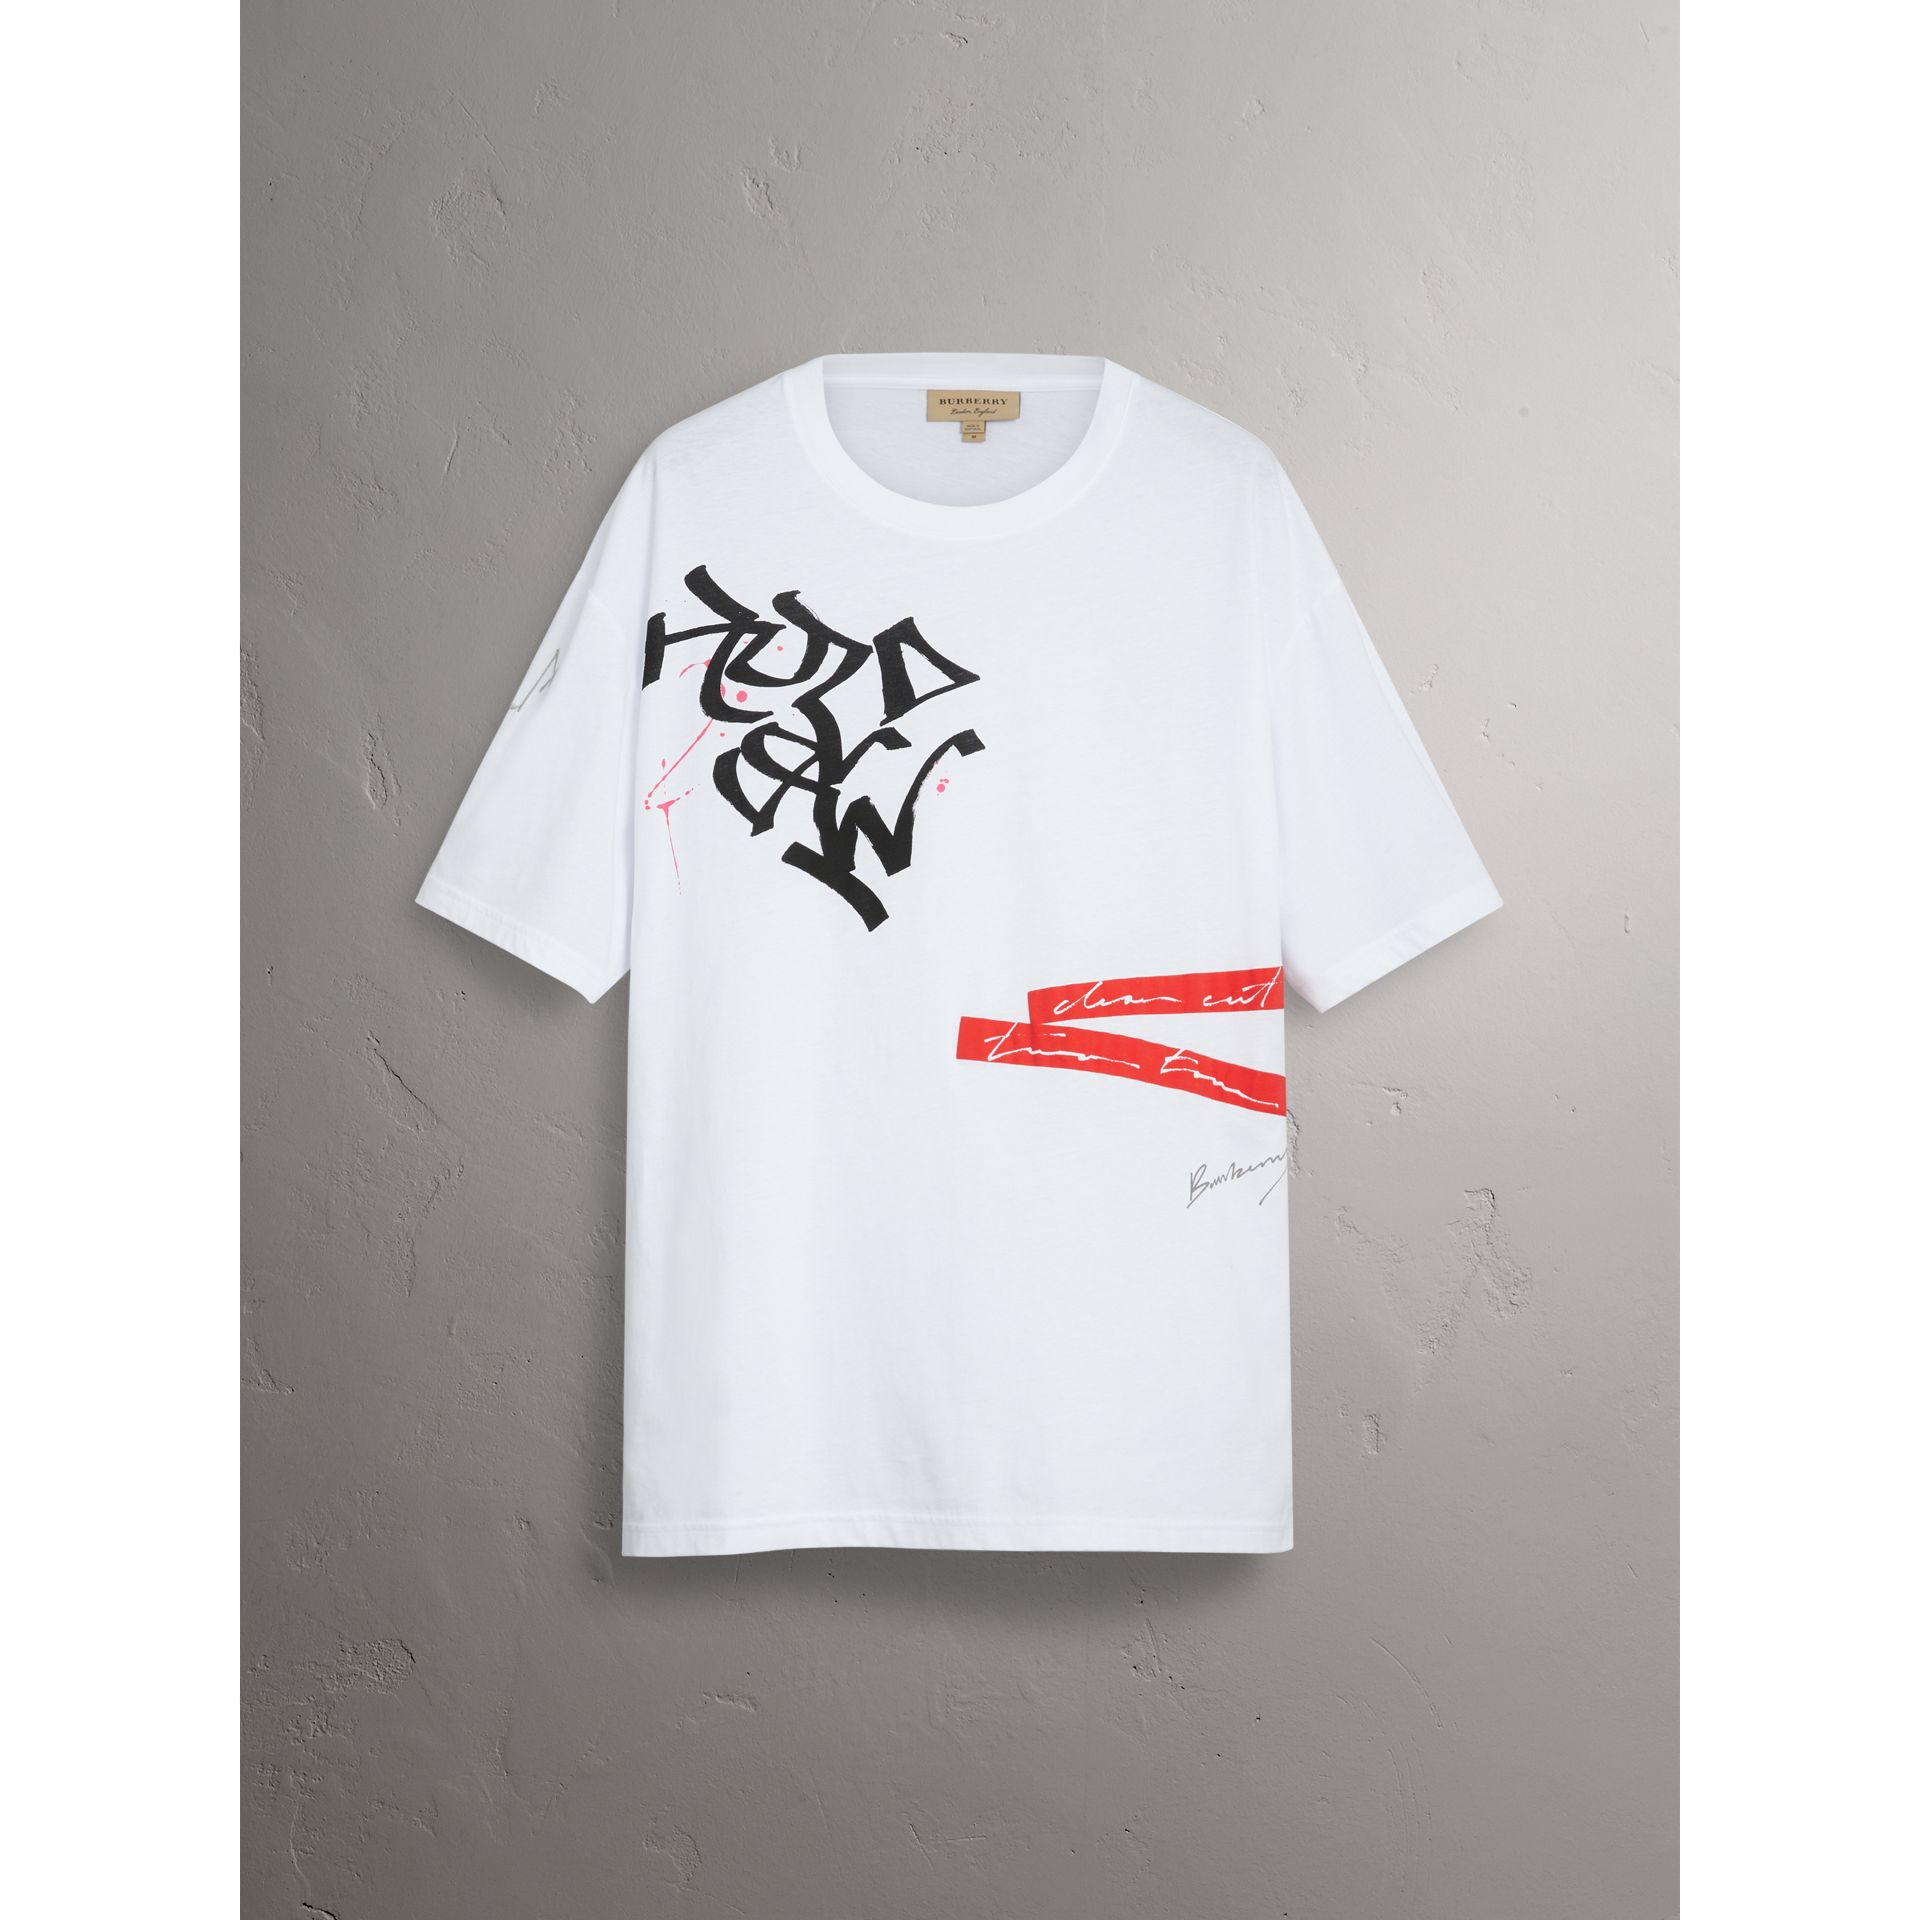 Burberry x Kris Wu Printed Cotton T-shirt in White - Men | Burberry United States - gallery image 3